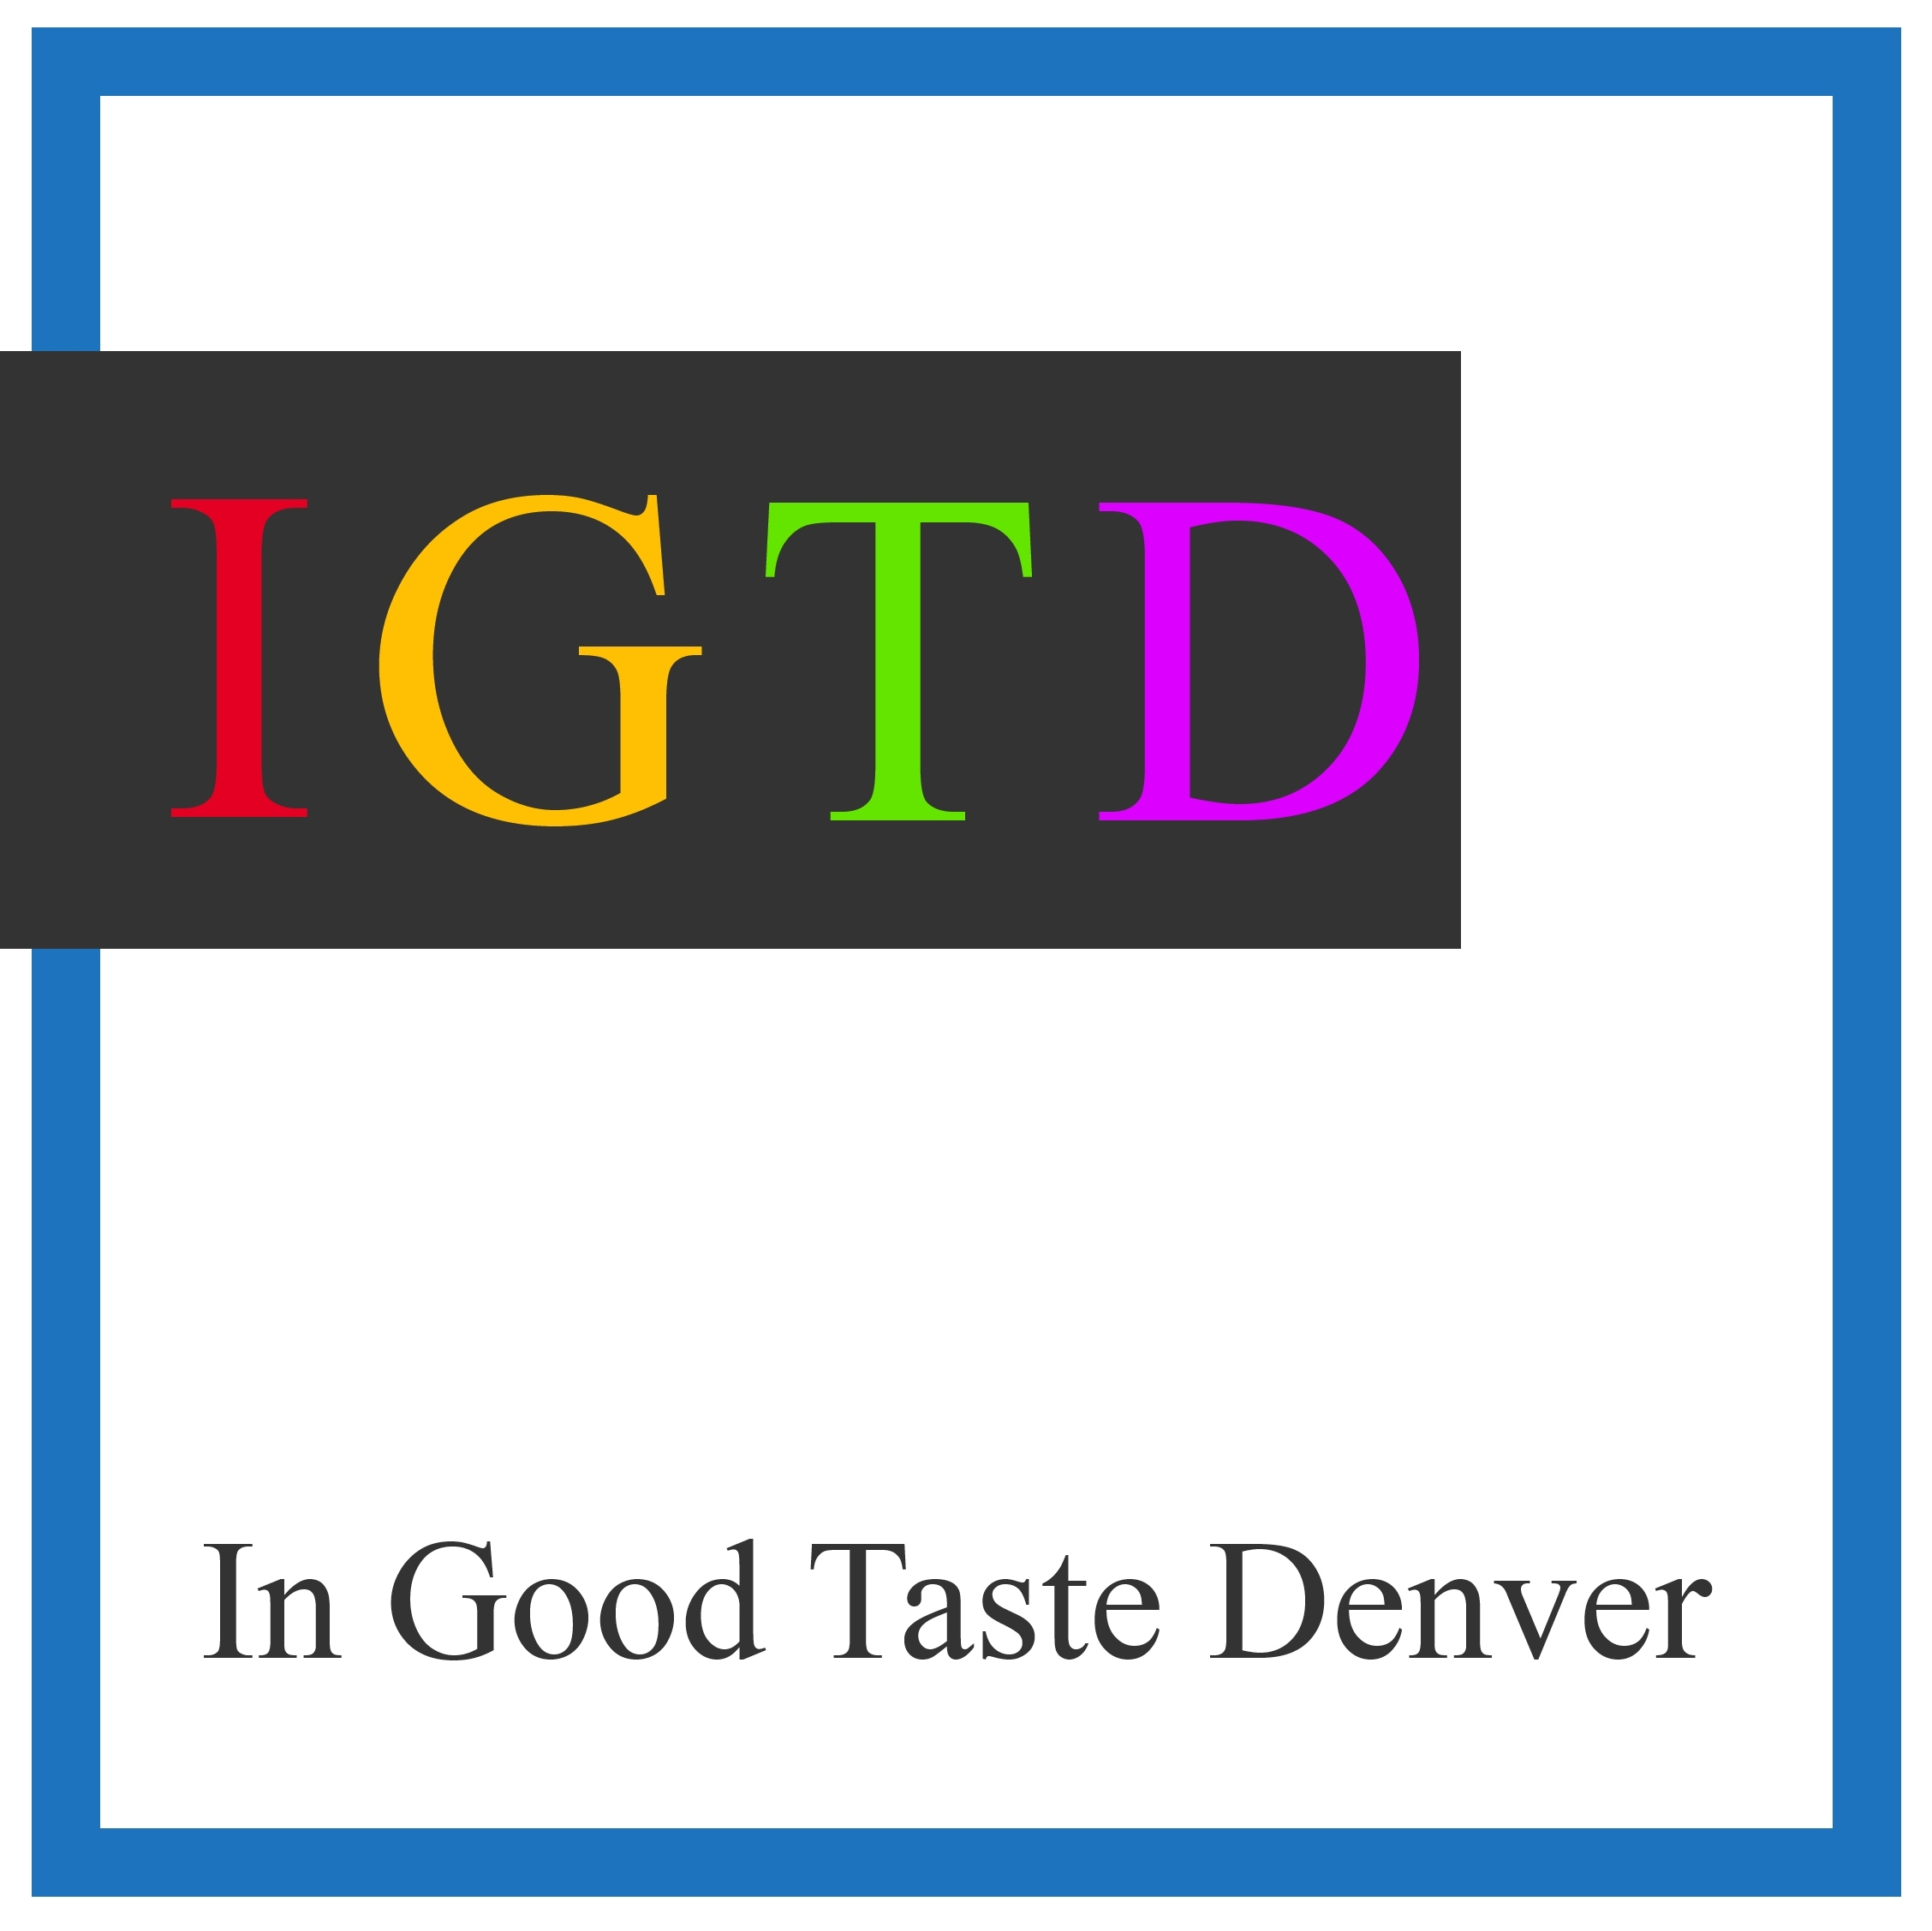 News & Reviews of restaurants, theater, travel and fun stuff happening in Denver and beyond.